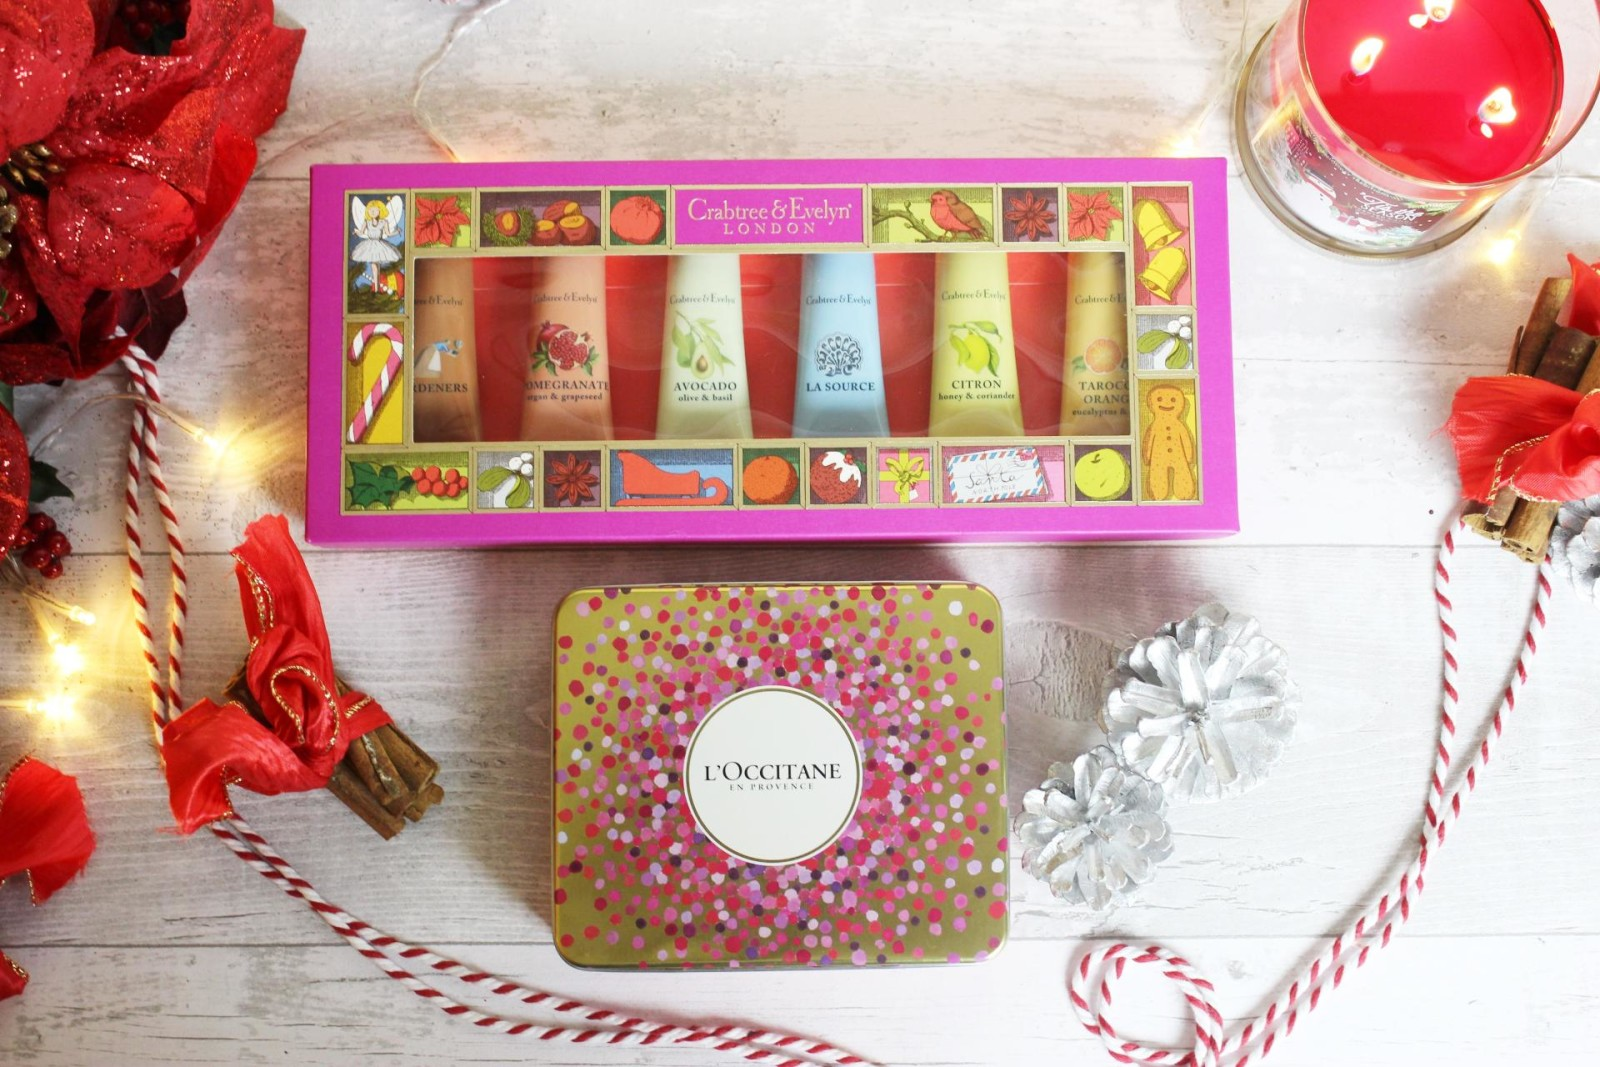 Crabtree & Evelyn Hand cream set L'Occitane Lip balm trio